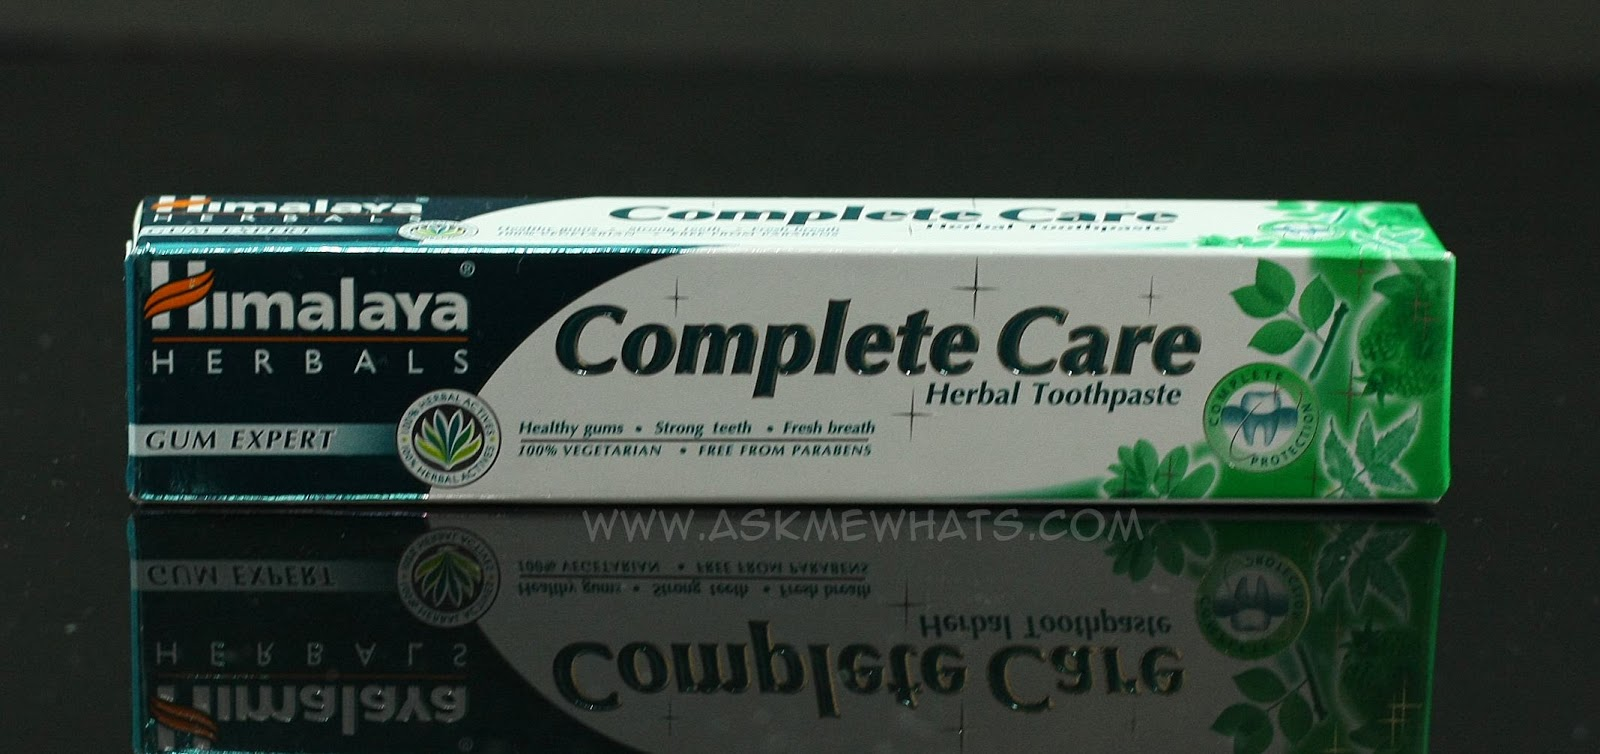 himalaya herbal toothpaste Himalaya herbal toothpaste : casesolution 1 how does low category involvement affect brand attitude explain the inconsiste.